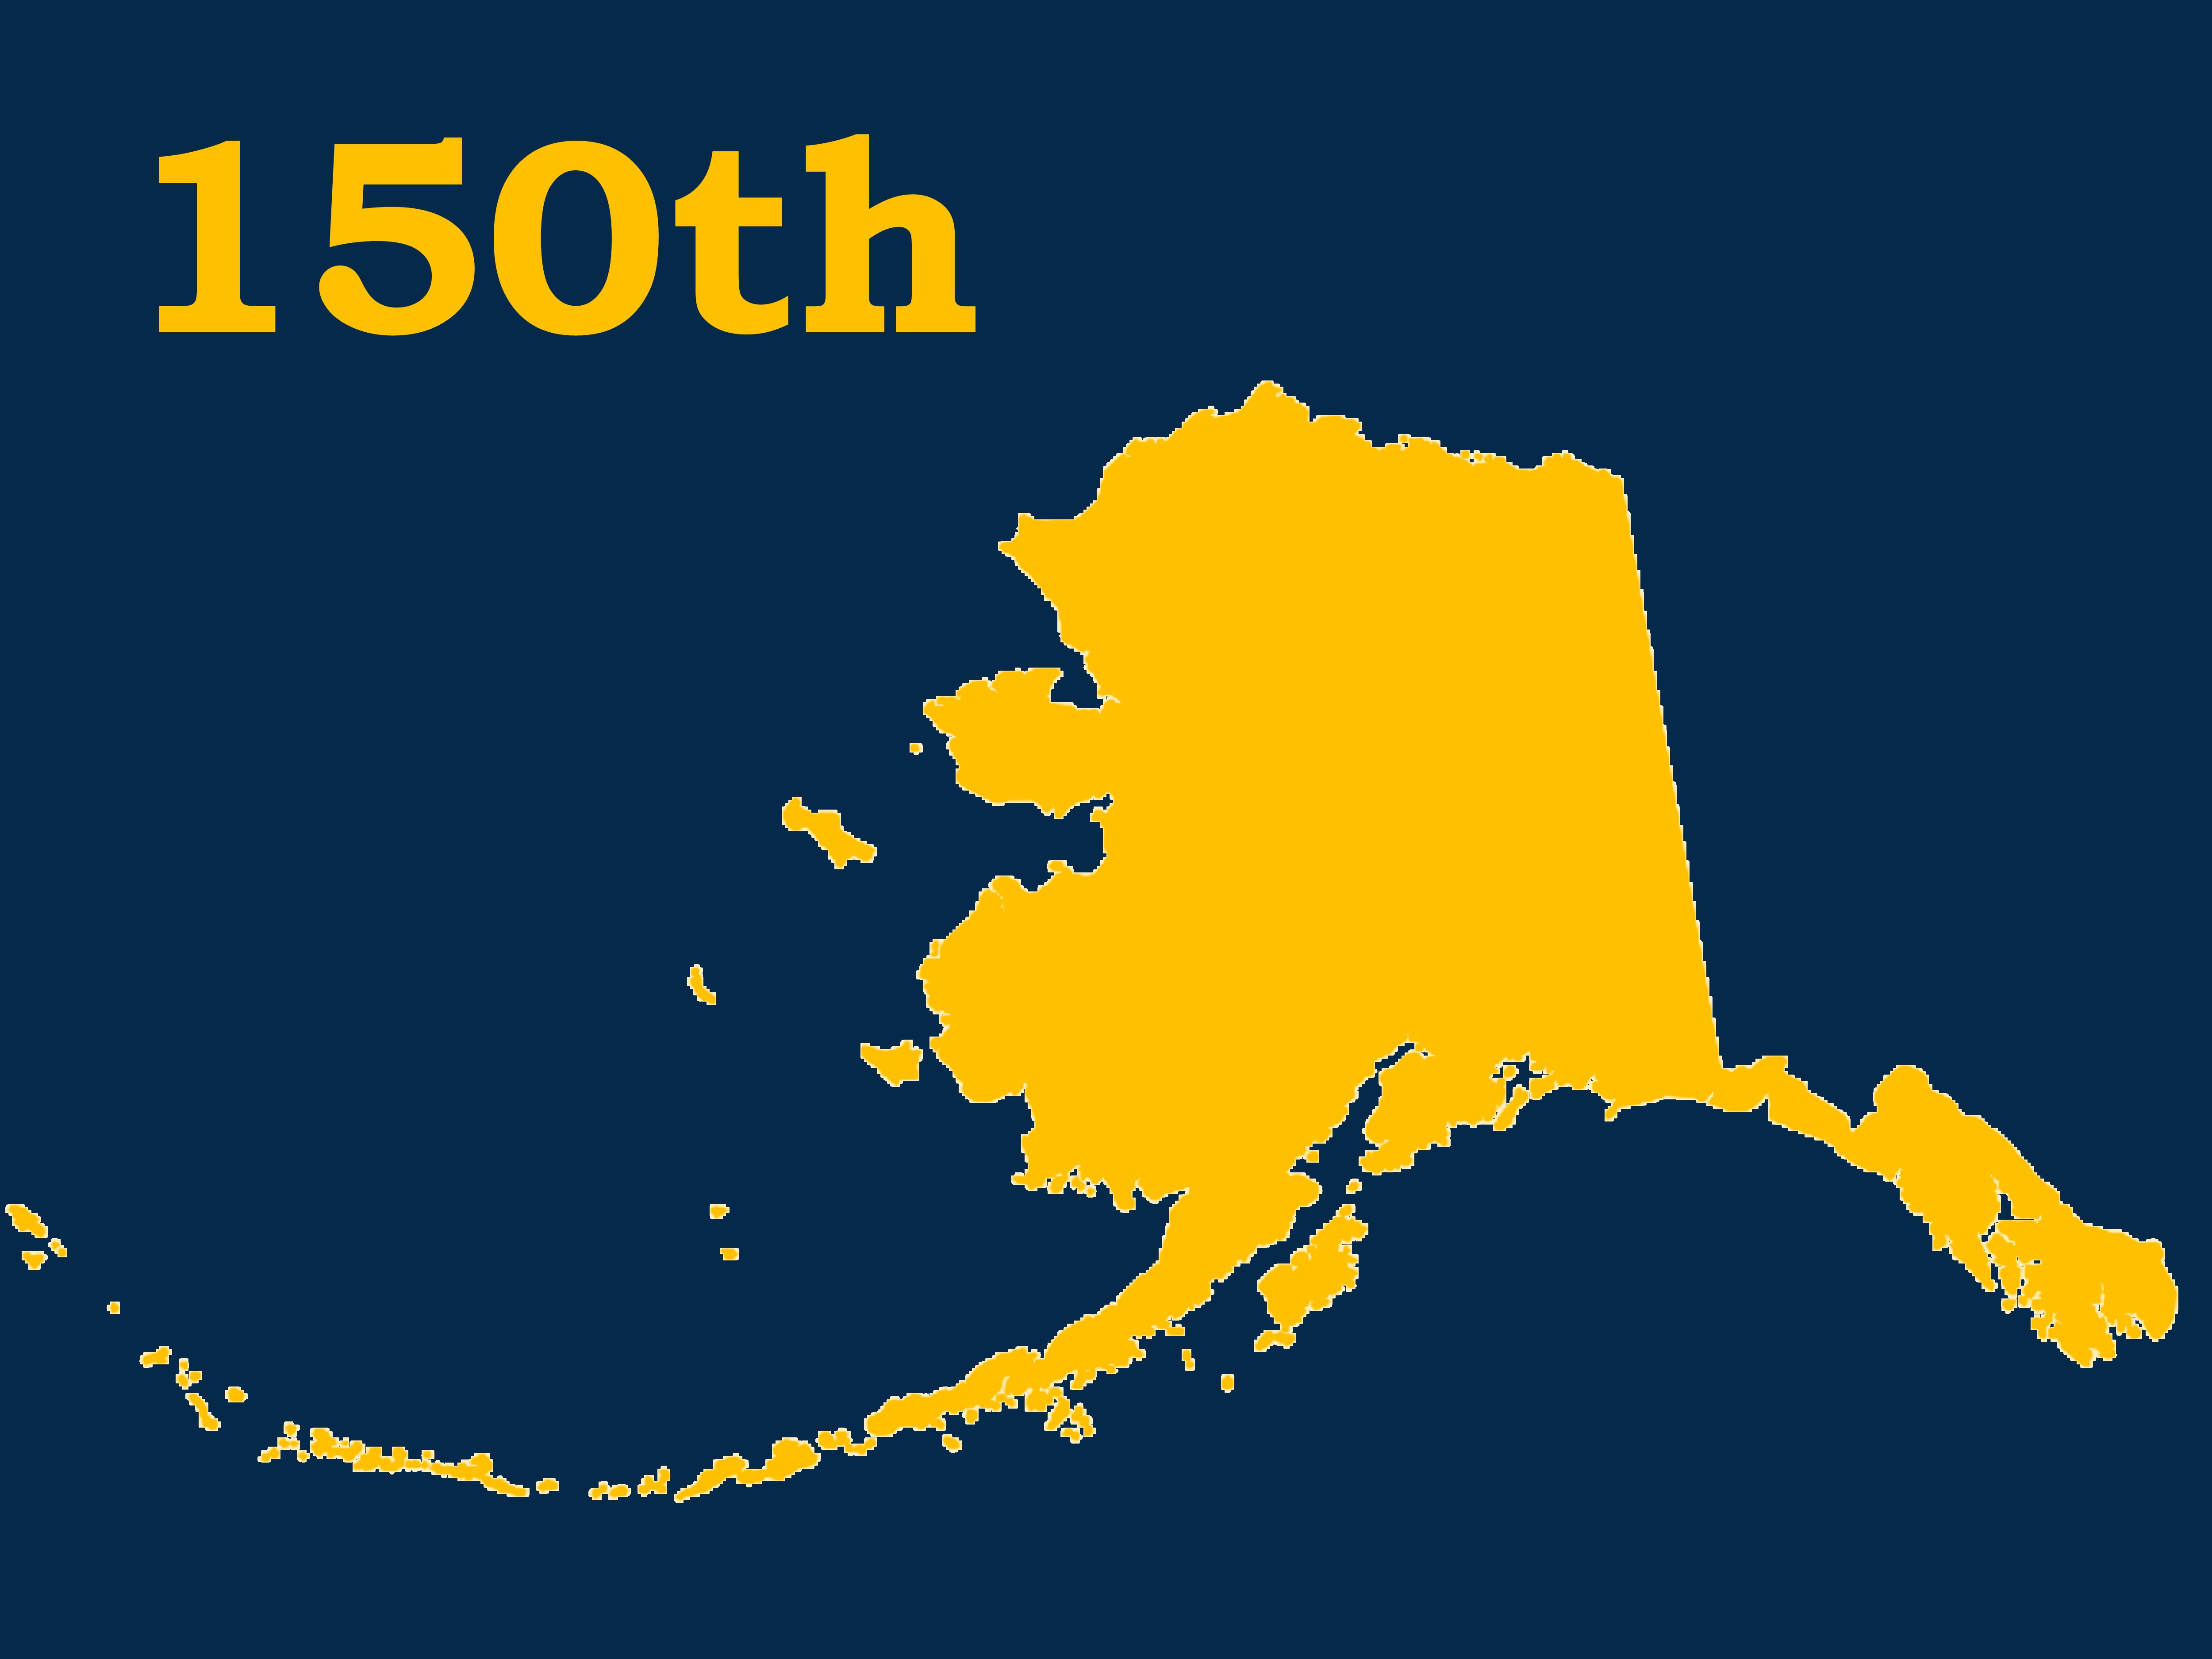 Alaska state image with 150th written text